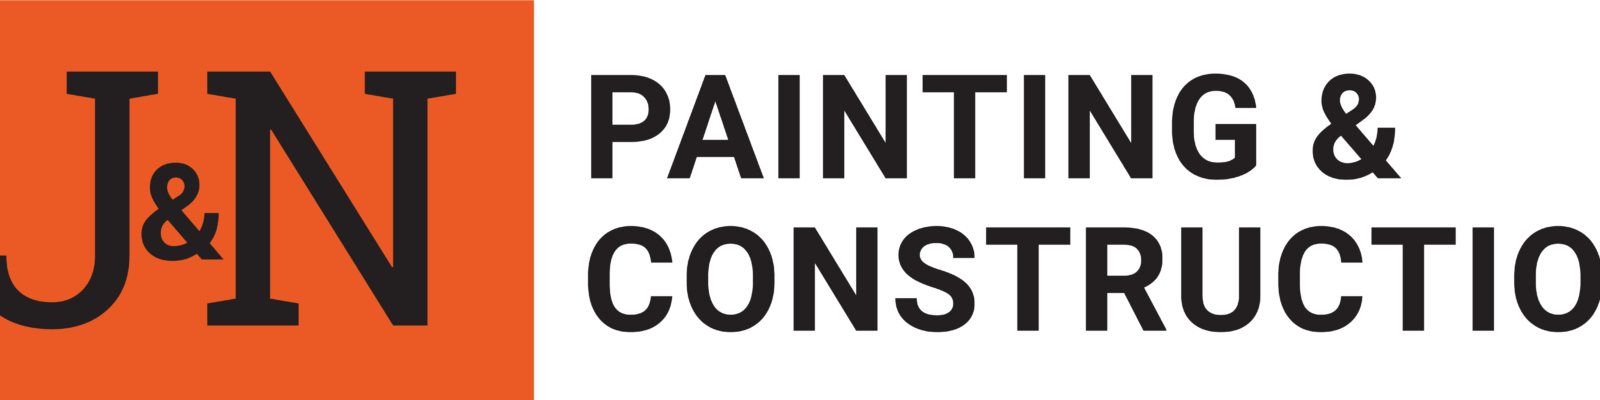 J&N Painting and Construction